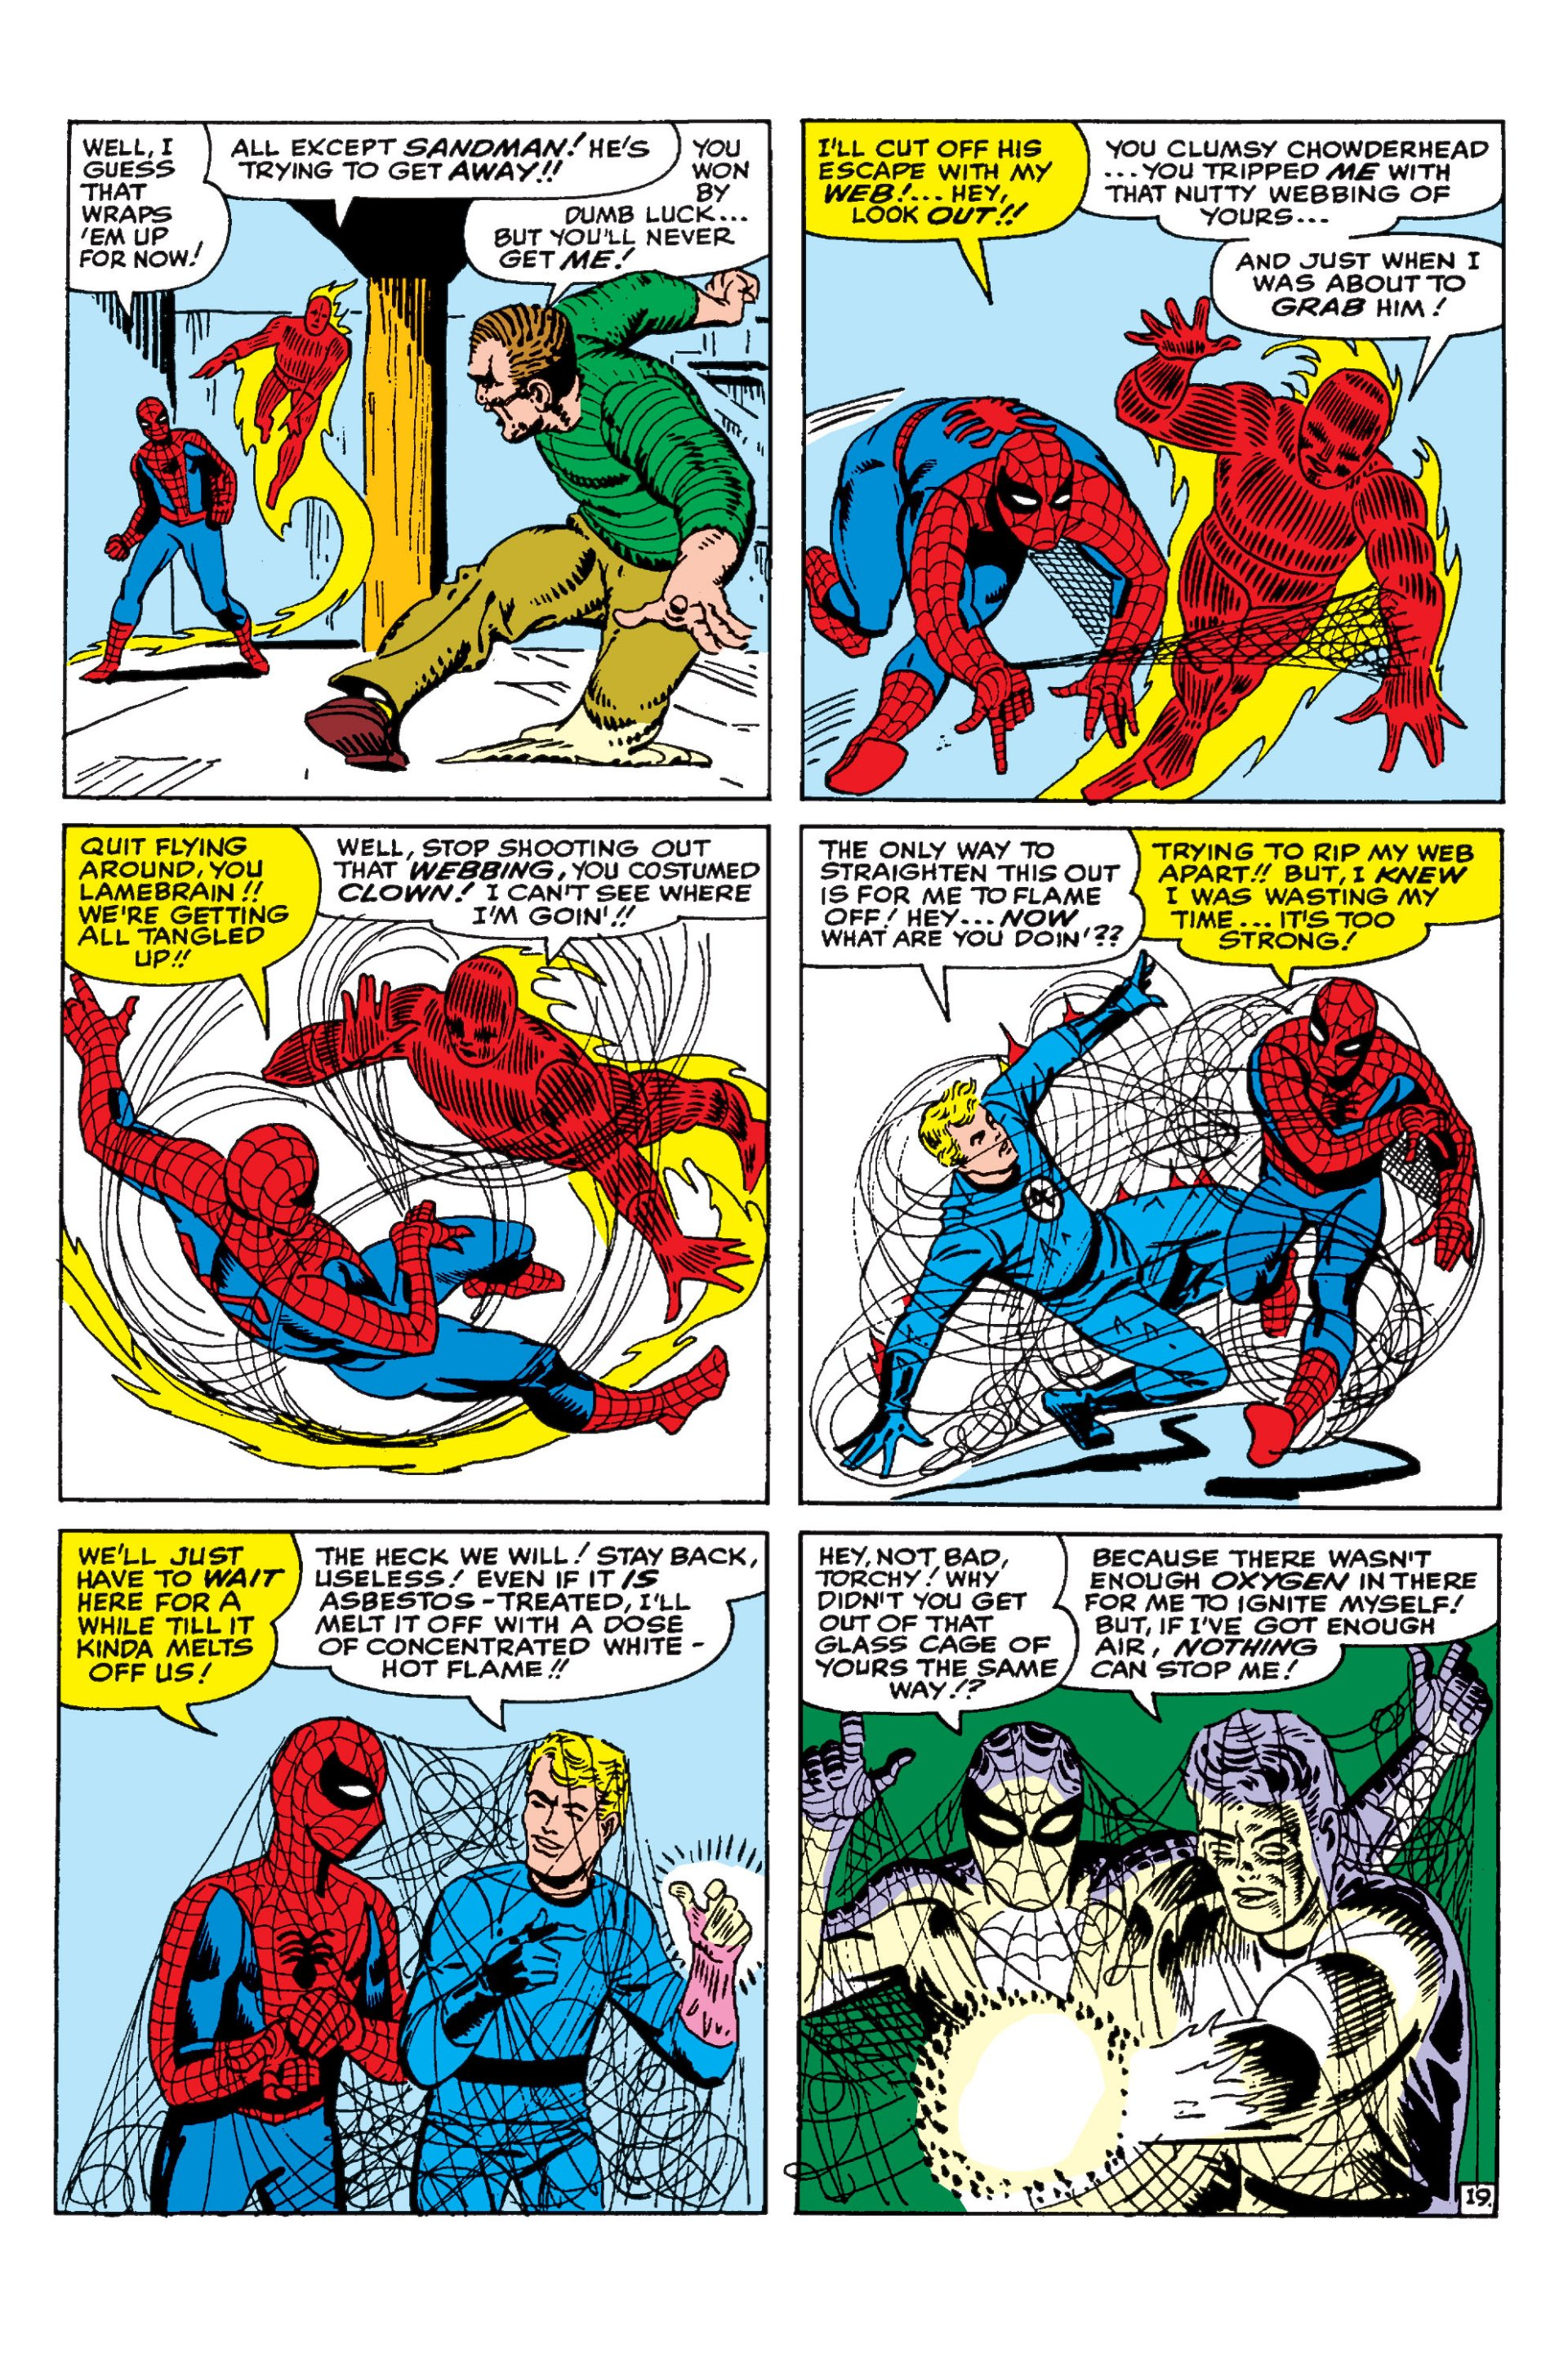 The Amazing Spider-Man (1963) 19 Page 19